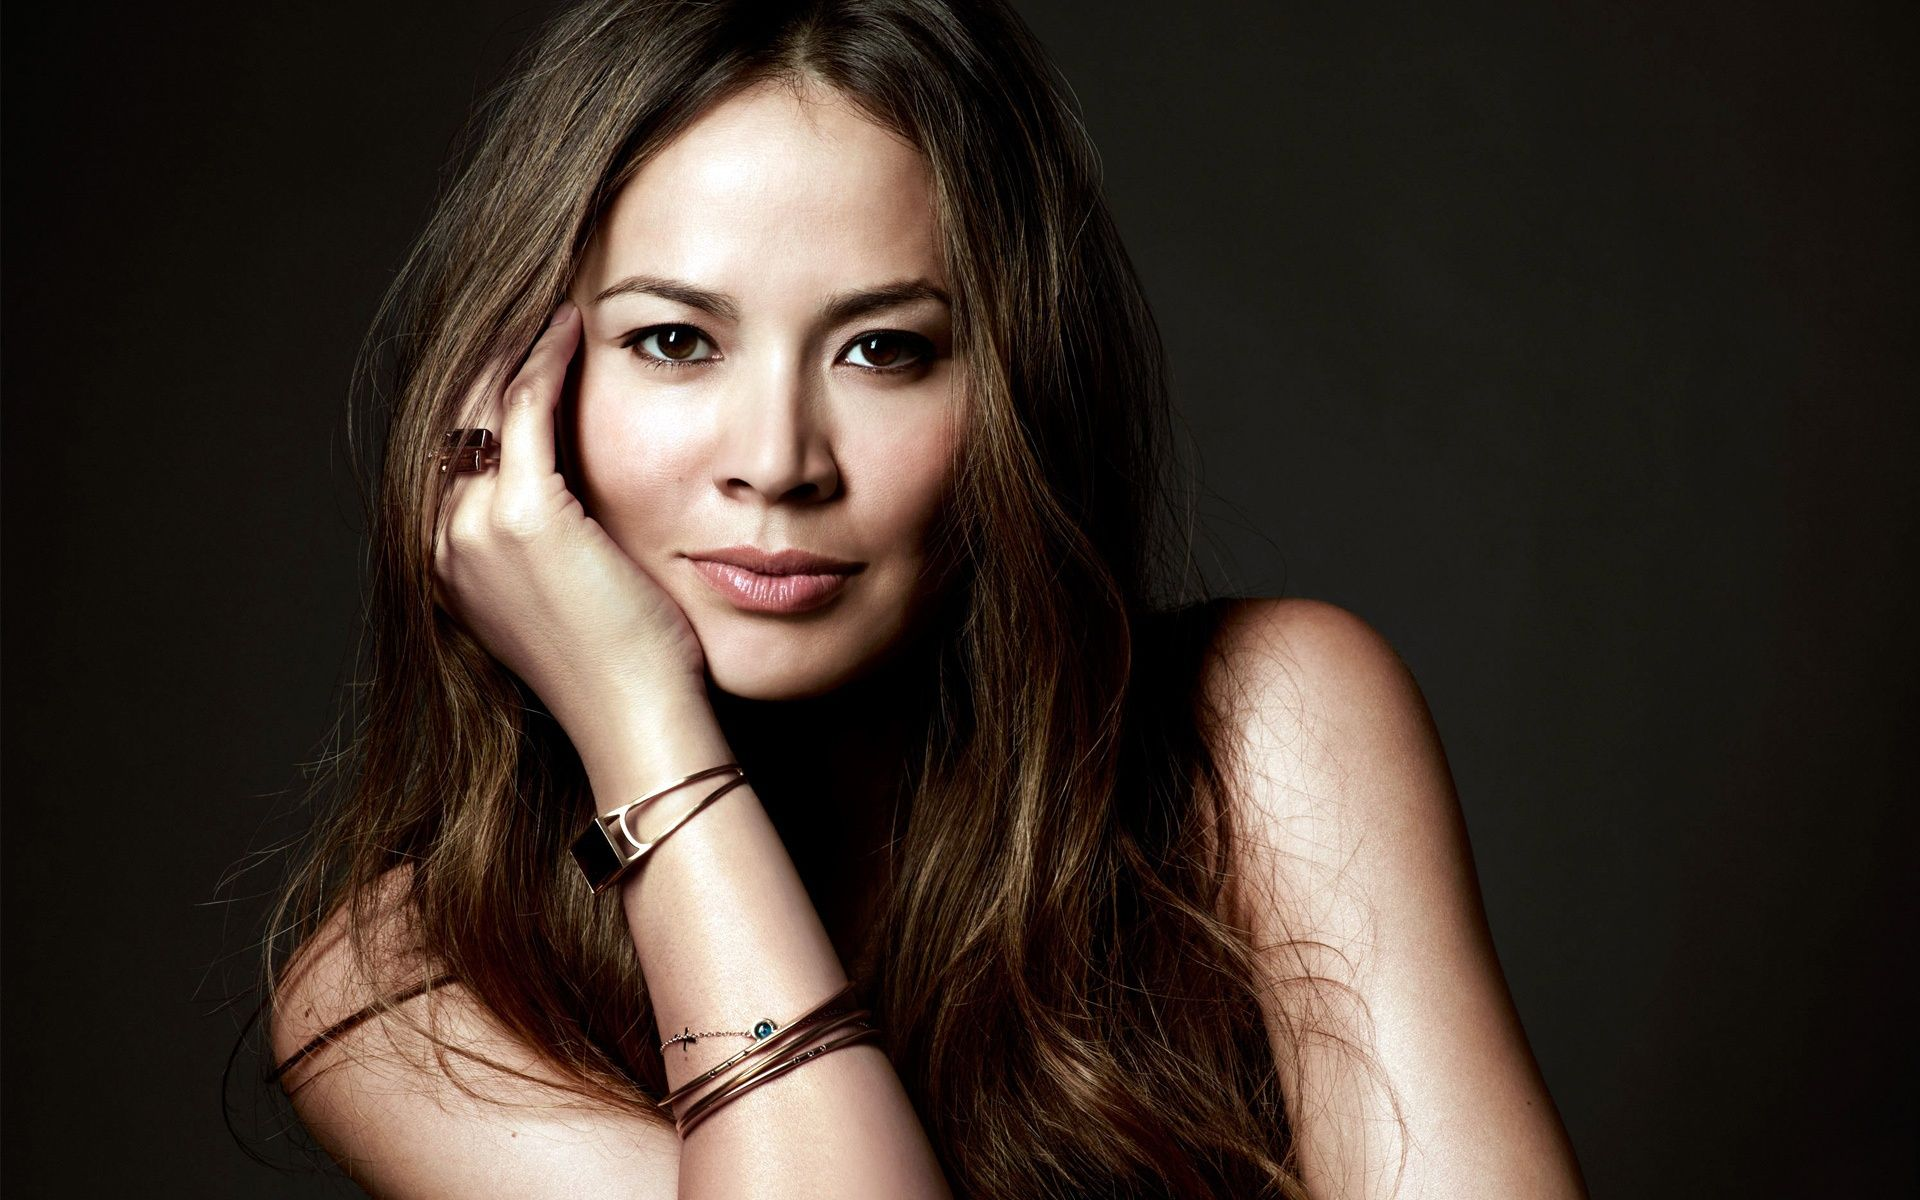 images of Moon Bloodgood - Google Search